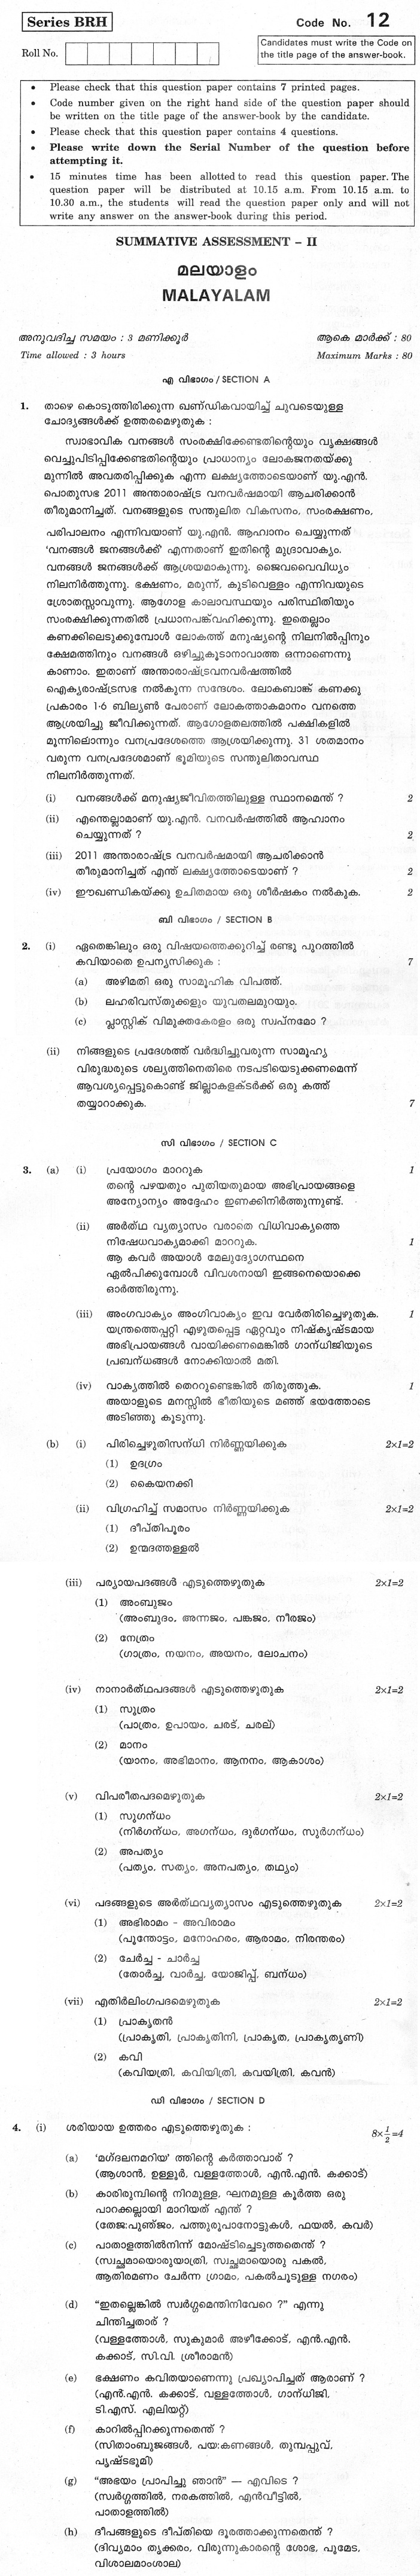 CBSE Class X Previous Year Question Papers 2012 Malayalam